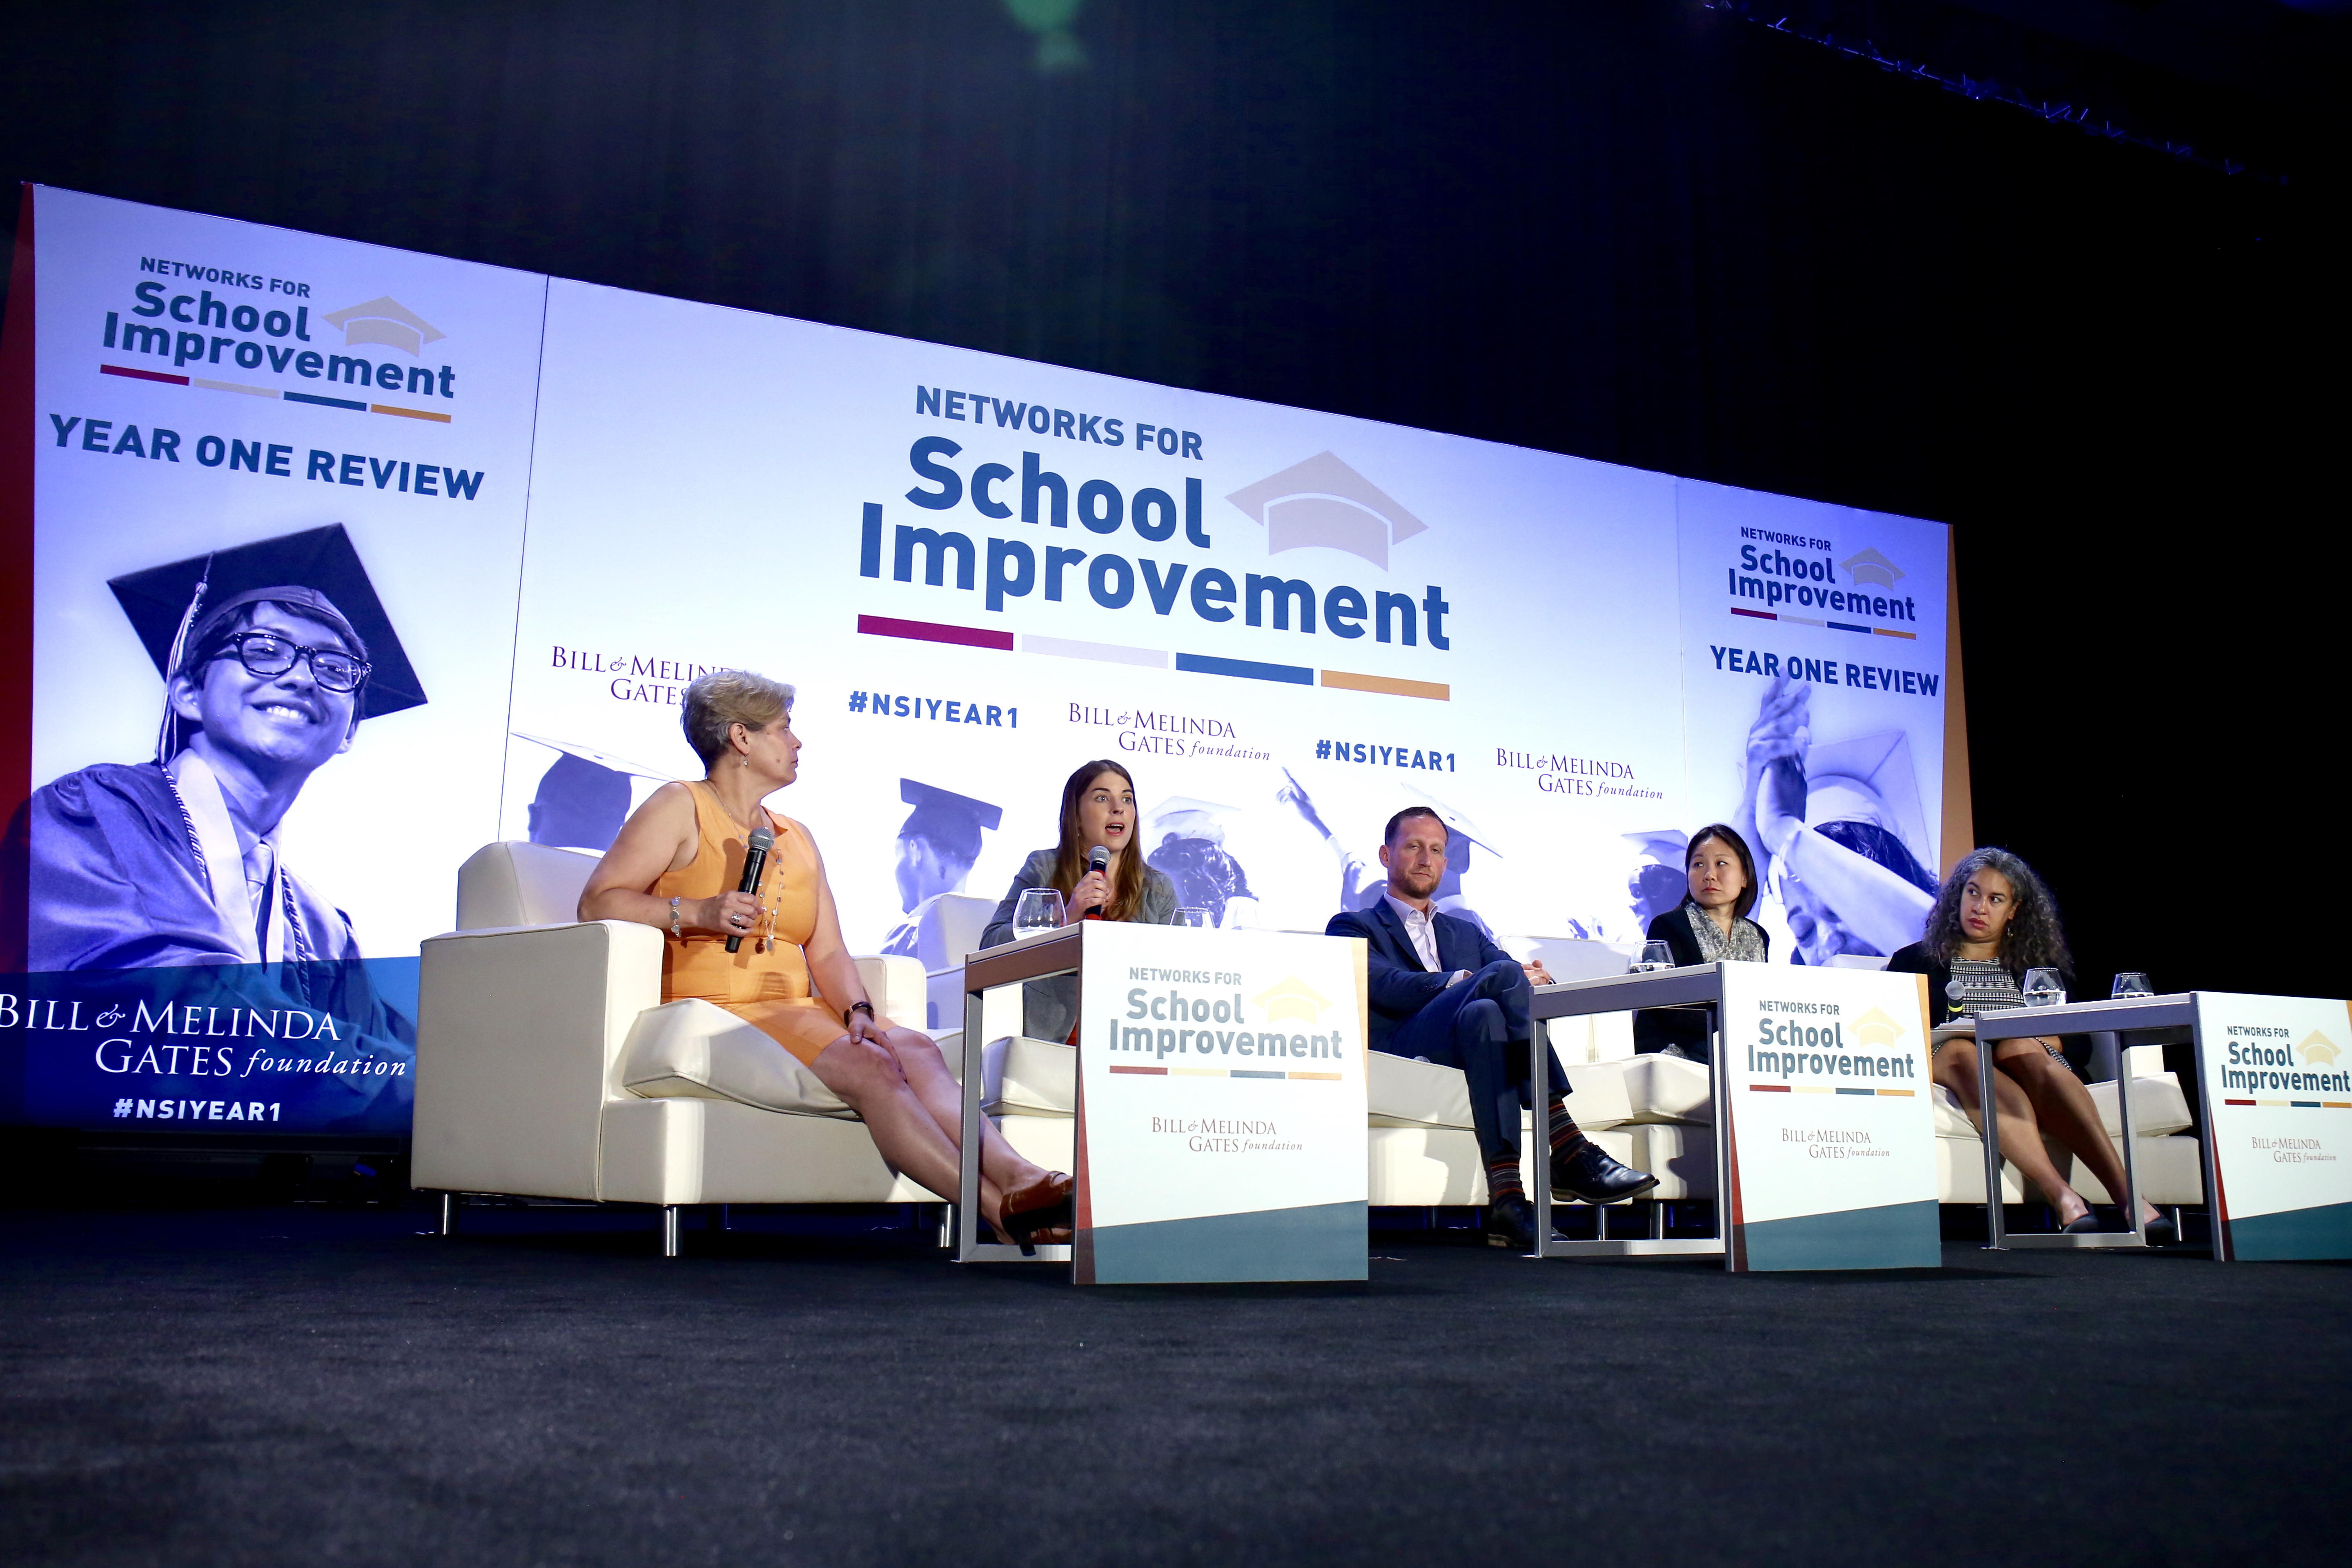 Katie Sutter of the KIPP Foundation speaks during a panel on student outcomes at the Gates Foundation's Networks for School Improvement seminar in College Park, Maryland.